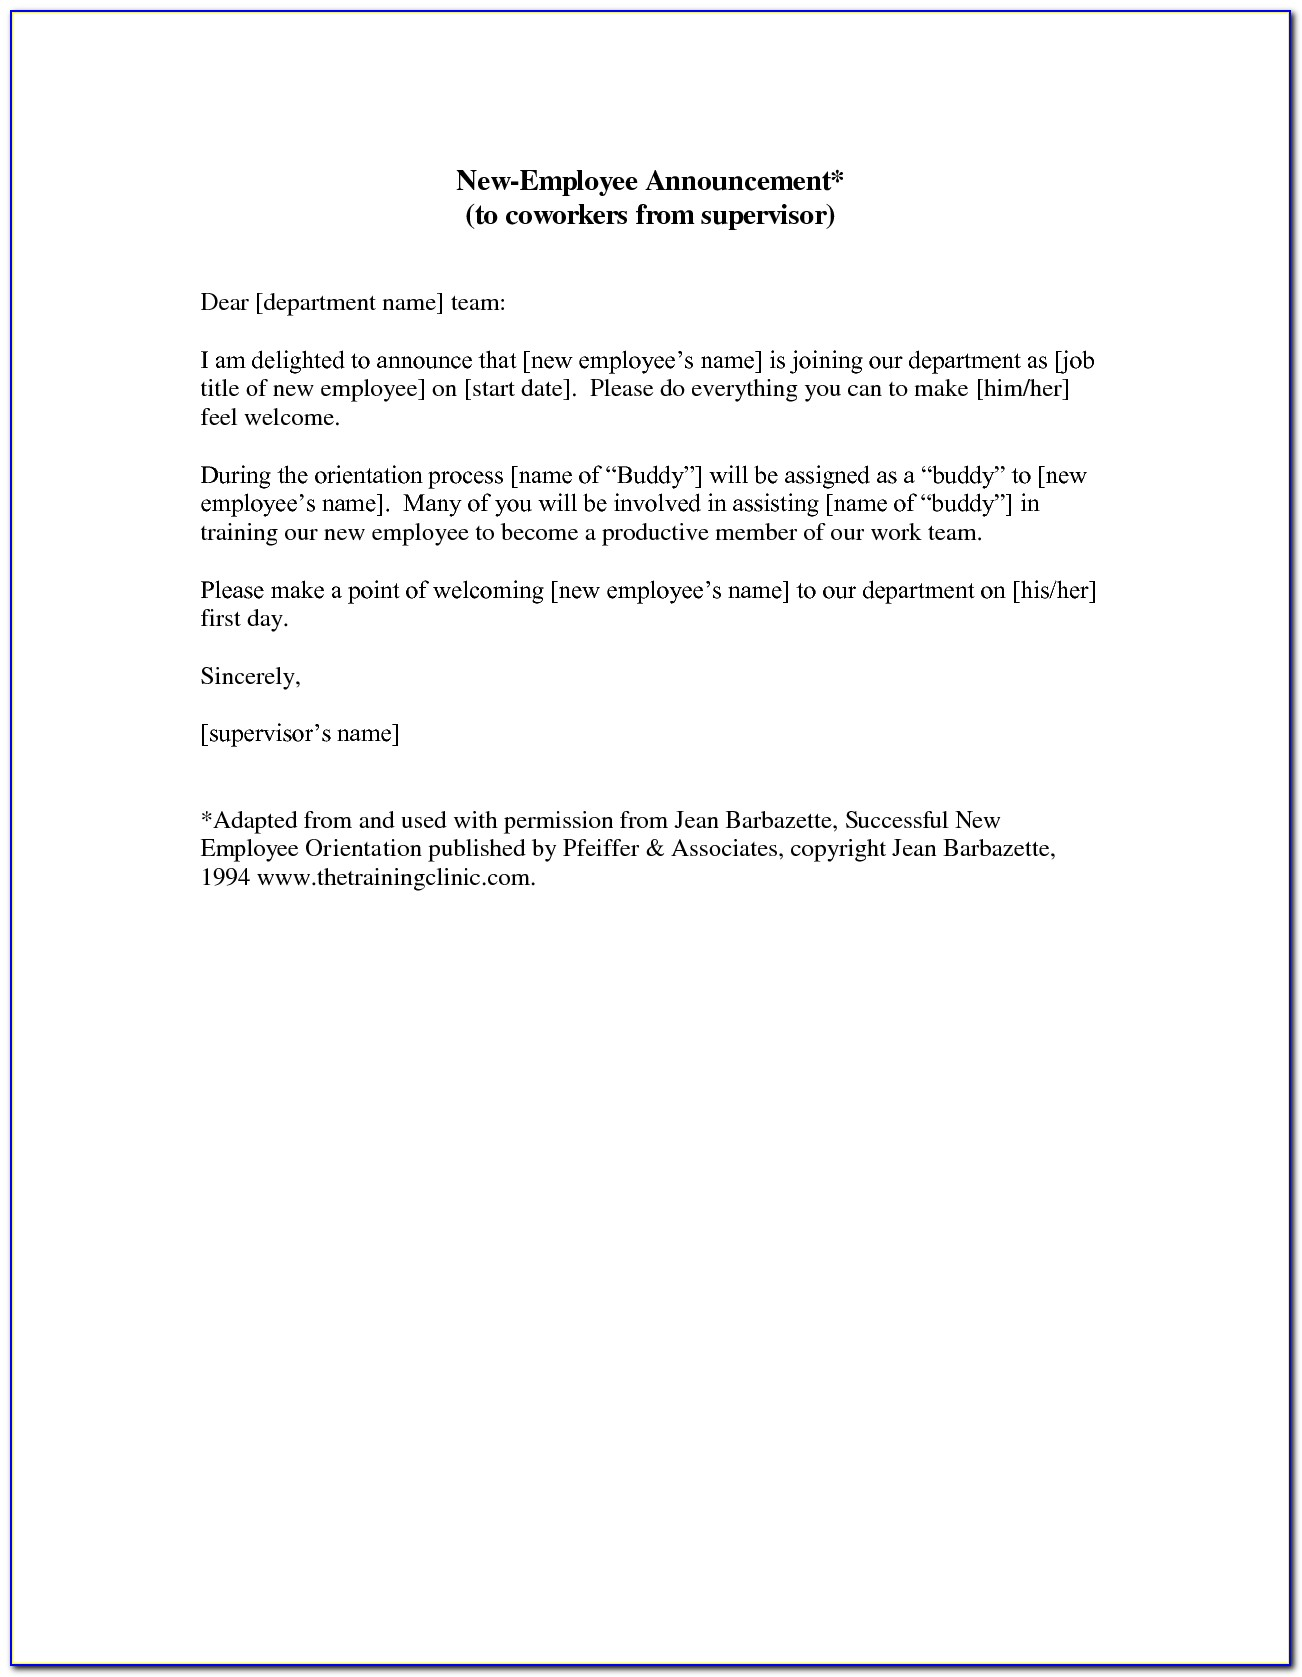 Welcome New Employee Announcement Email Template